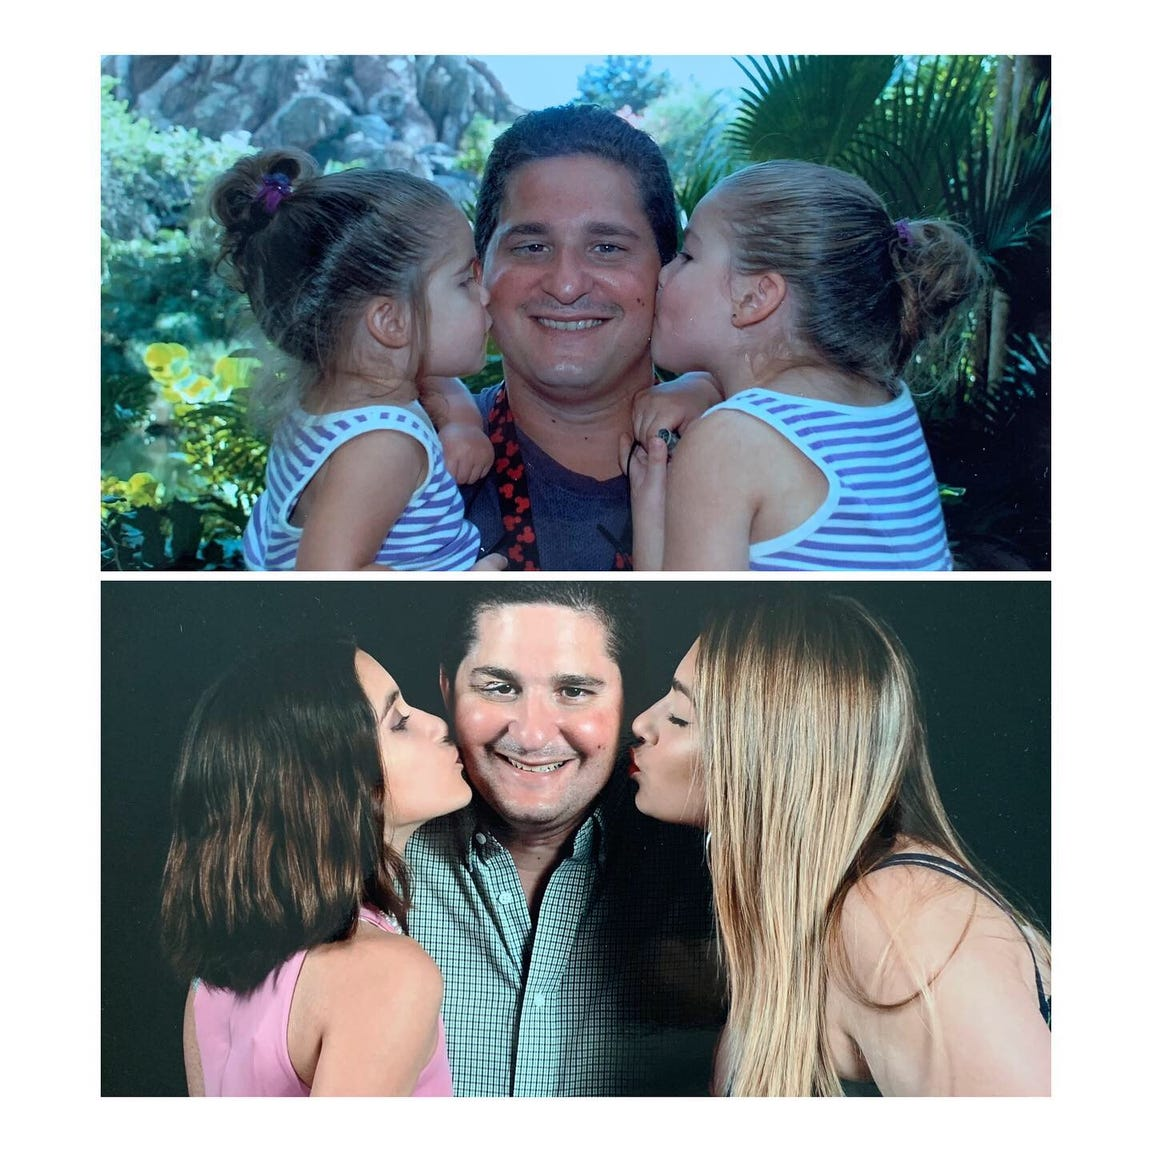 Former Spotswood Mayor Nicholas Poliseno (center) worked at Ground Zero following the WTC Terrorist Attack on Sept. 11 and was diagnosed with Sarcoidosis. He died on July 18, 2019 from Sept. 11-related illnesses. His wife Allison Poliseno and daughters Victoria, 15, (right) and Olivia, 12, (left) intend to continue in his footsteps promoting awareness for Sept. 11 victims and survivors.